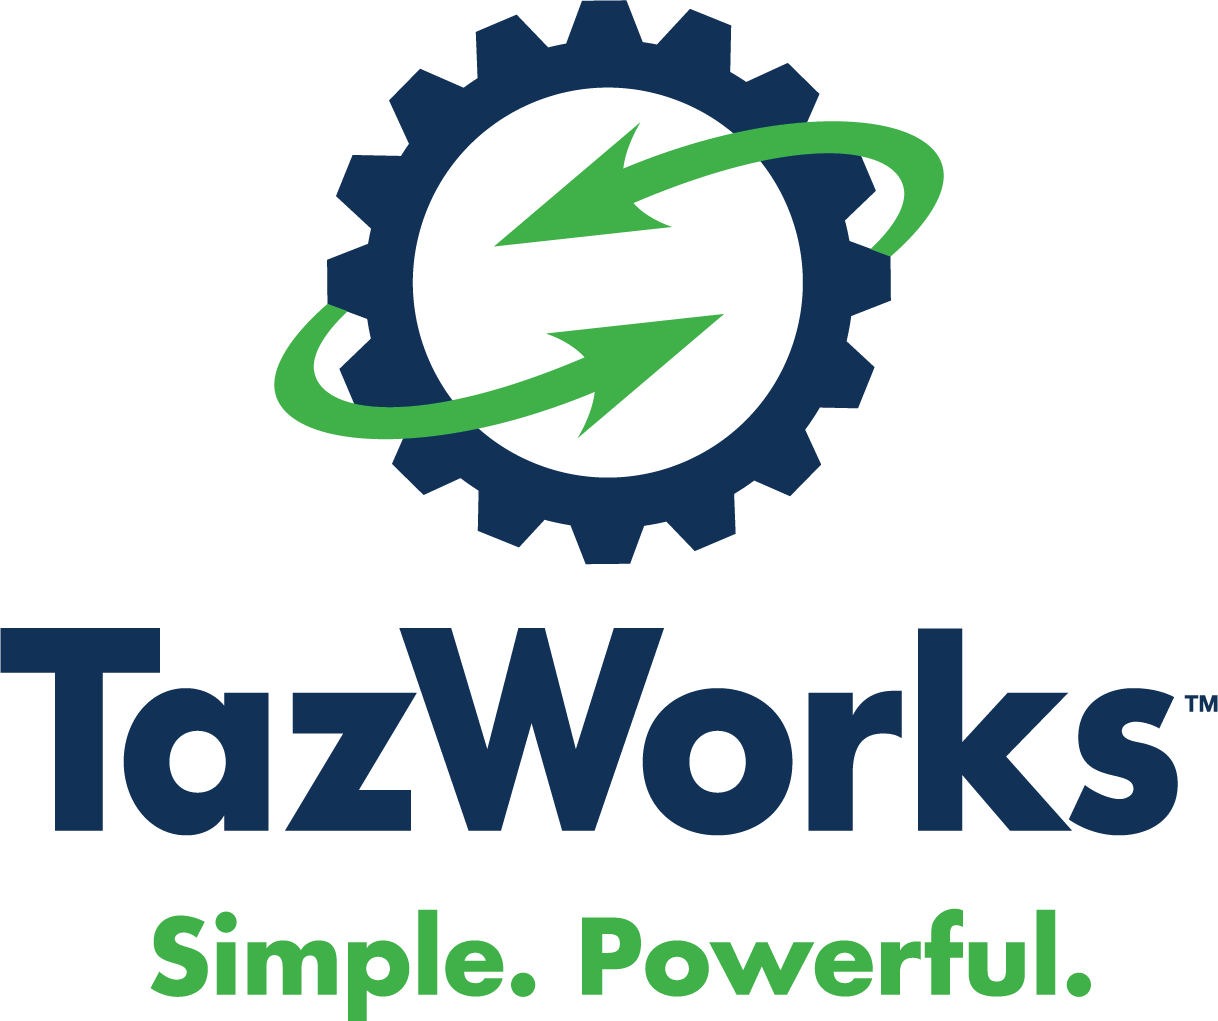 TazWorks Launches New Account Management Model